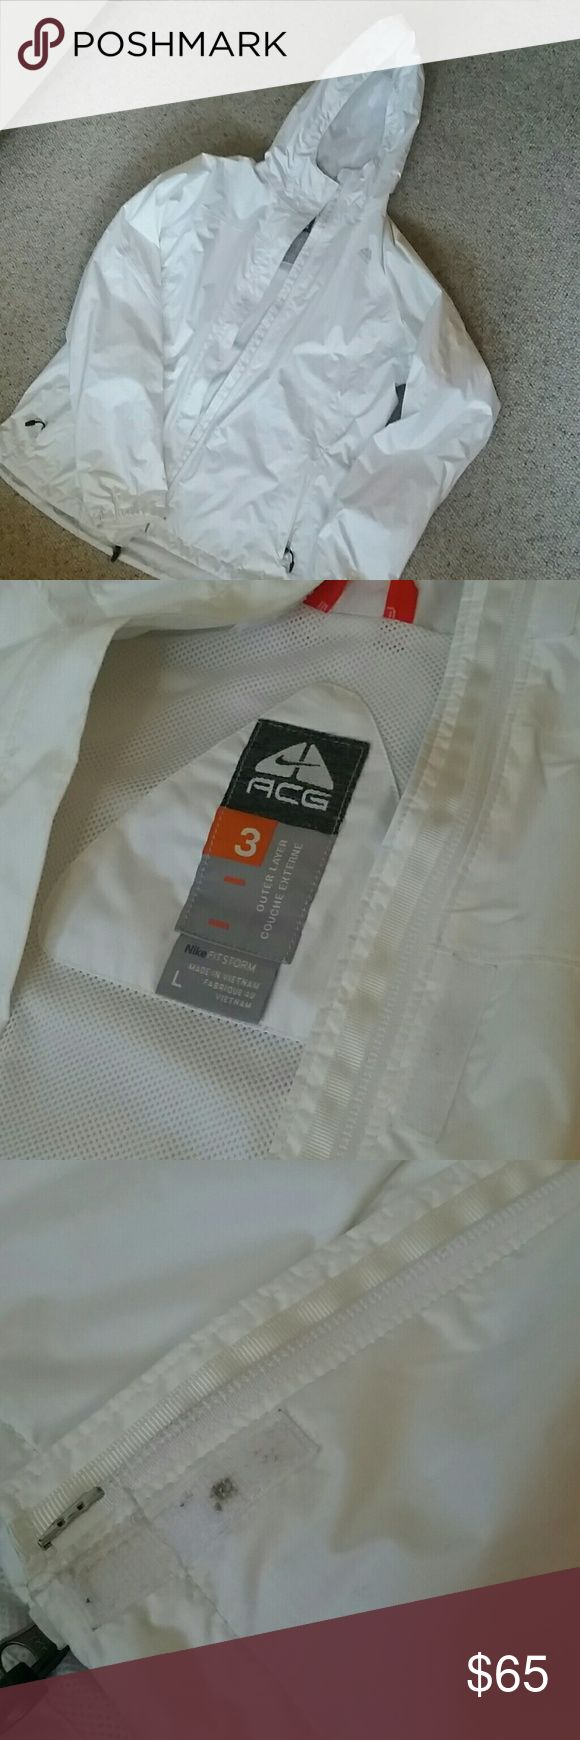 Nike Fitstorm raincoat with hood White jacket in great condition! Only worn a few times, it's just too big for me. There is a little bit of dirt trapped in the velcro and a bit of barely noticable staining around the wrists, both as shown. Offers welcome :) Nike Jackets & Coats